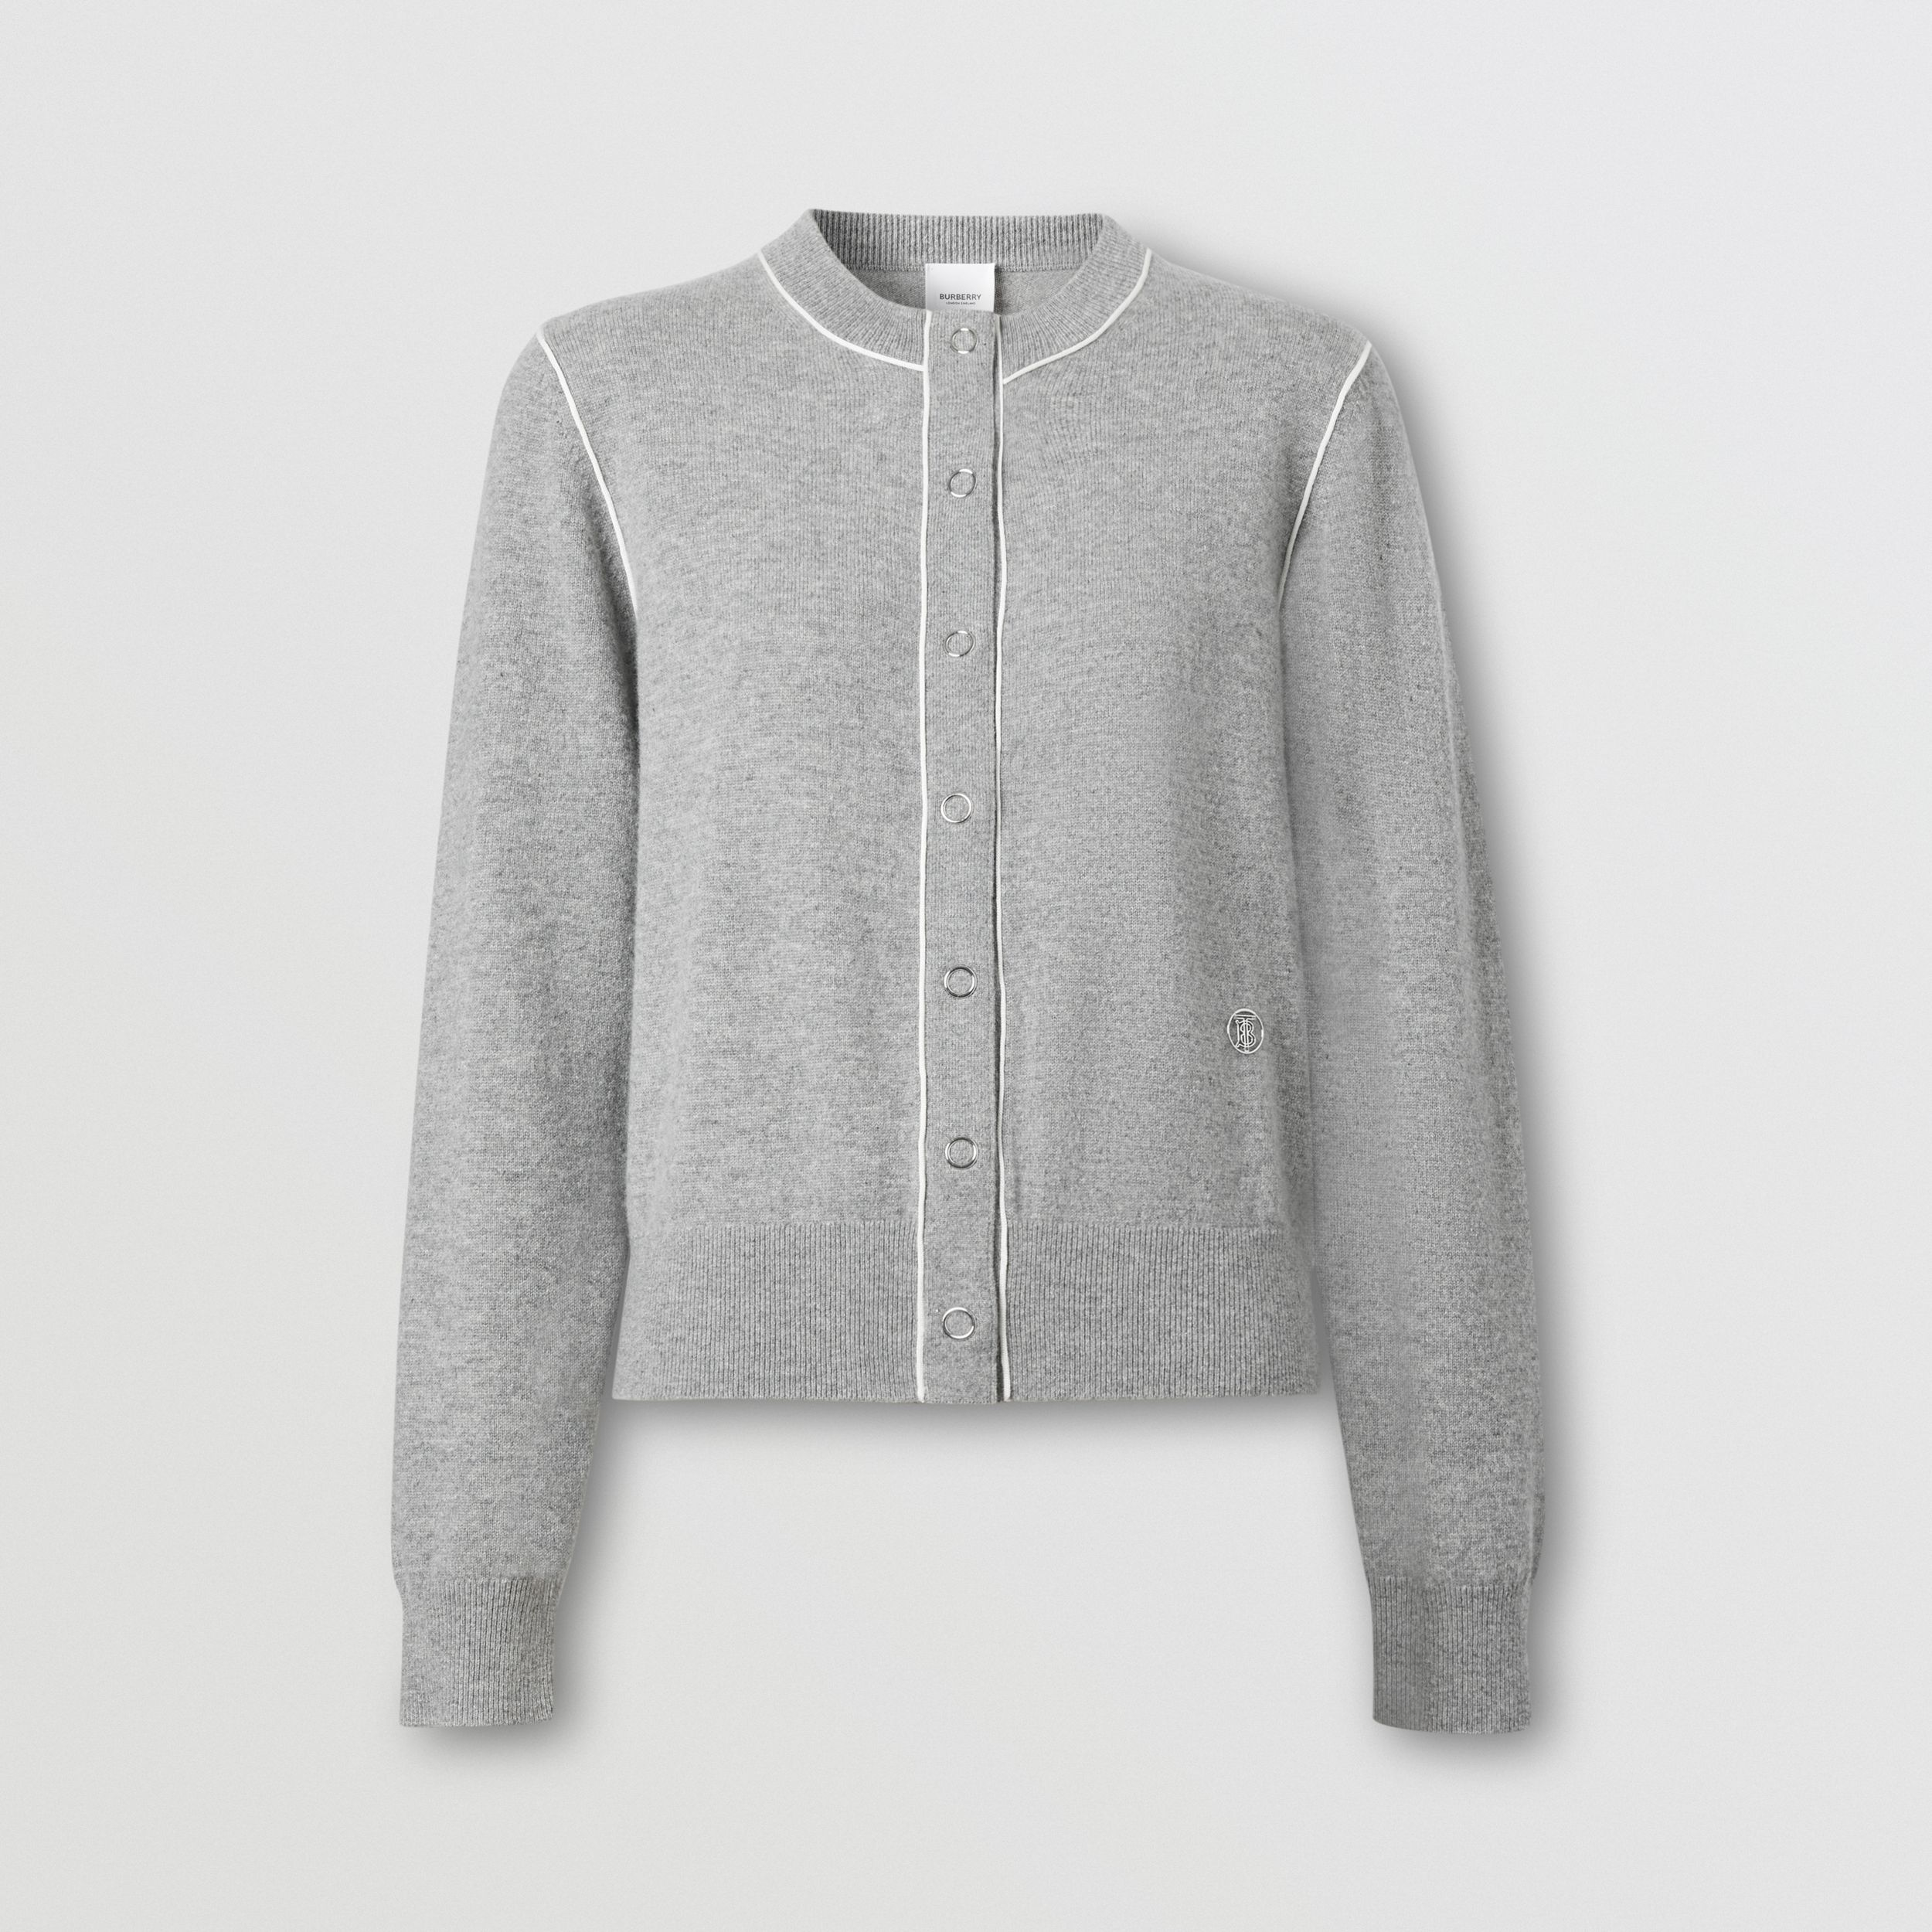 Silk Trim Monogram Motif Cashmere Cardigan in Grey Melange - Women | Burberry Australia - 4